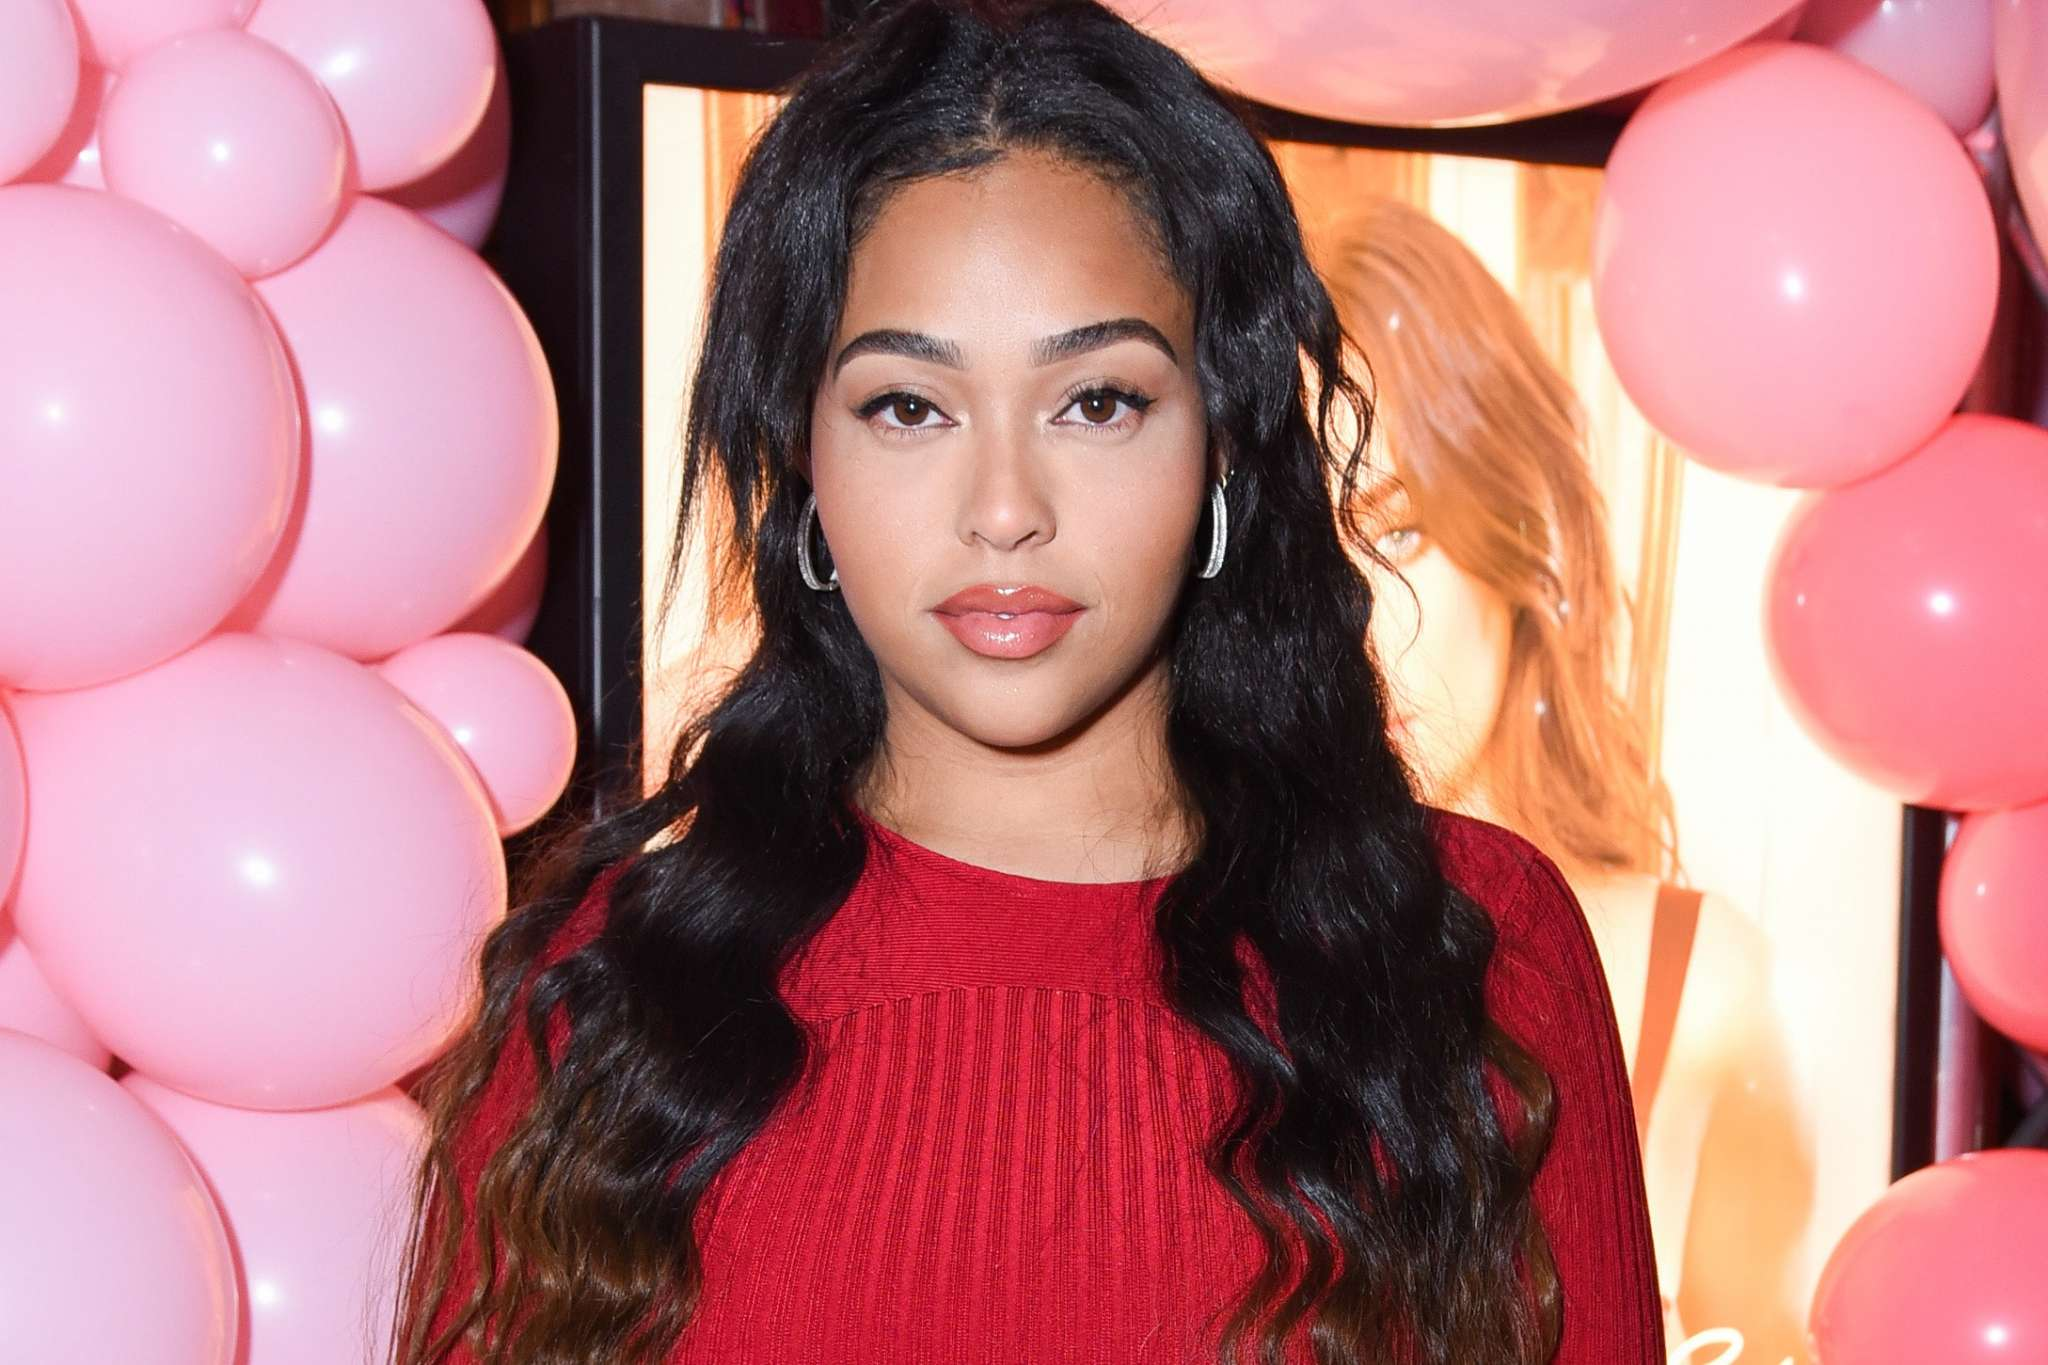 Jordyn Woods Flaunts Her Weight Loss – Check Out Her Post Here